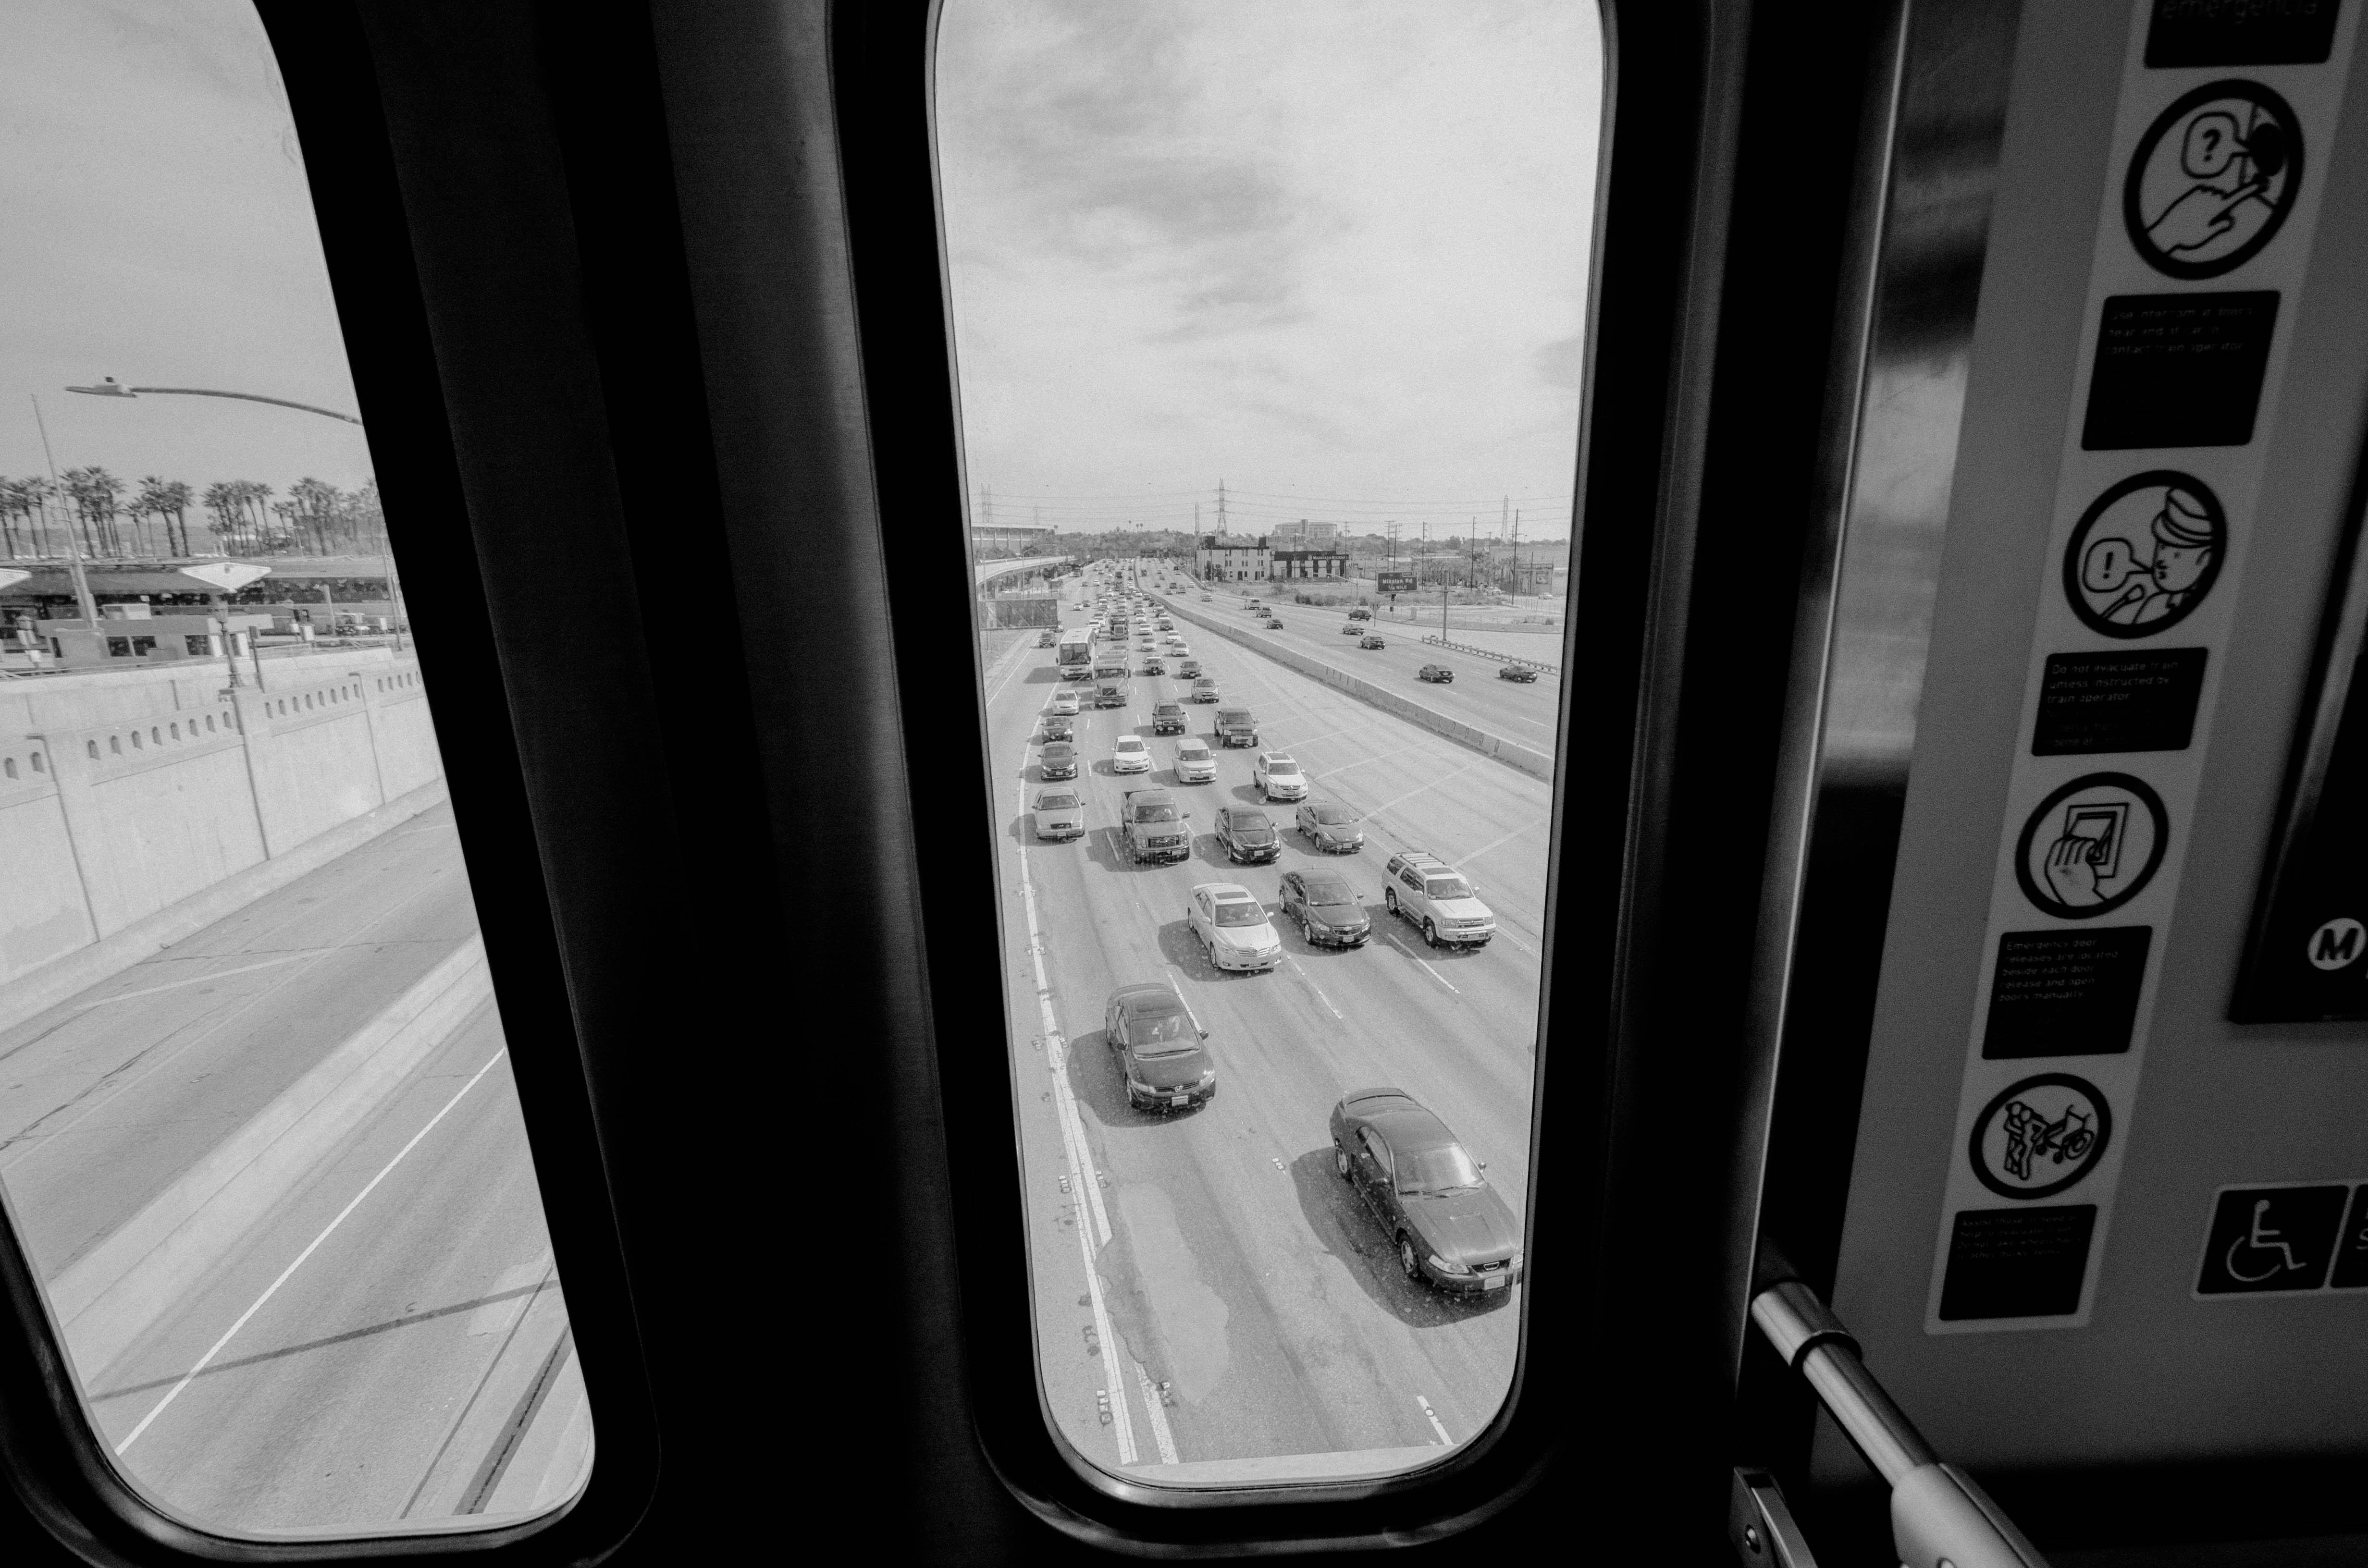 ART OF TRANSIT: Mid-day traffic constipation on the 101. Photo by Steve Hymon/Metro.